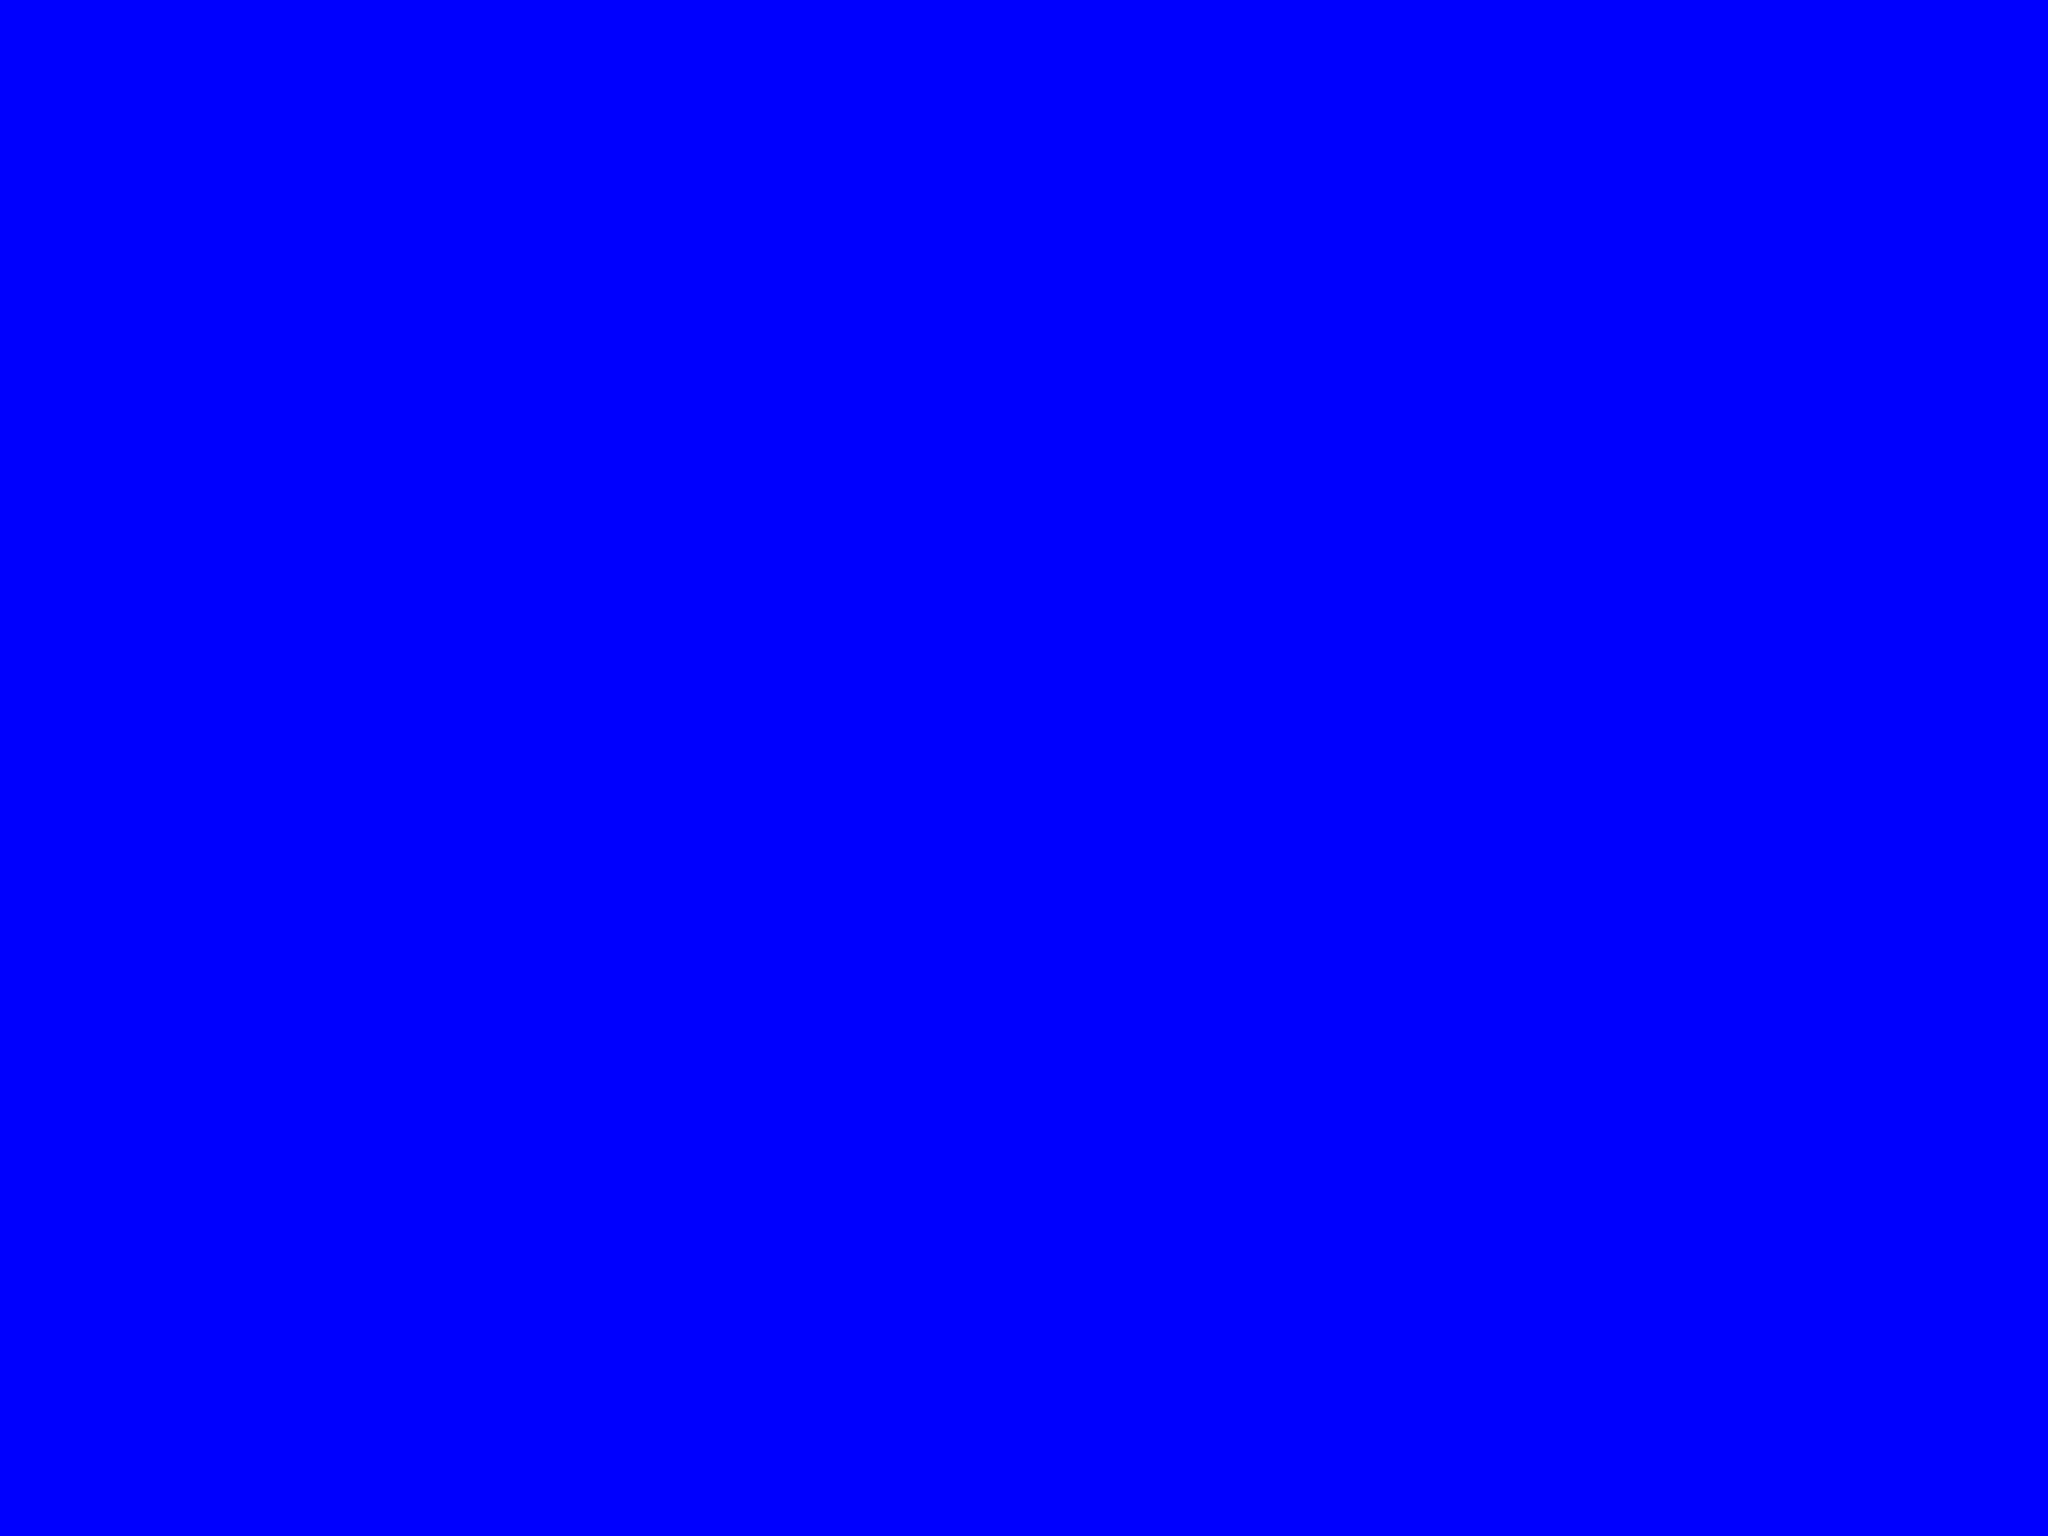 2048x1536 Blue Solid Color Background